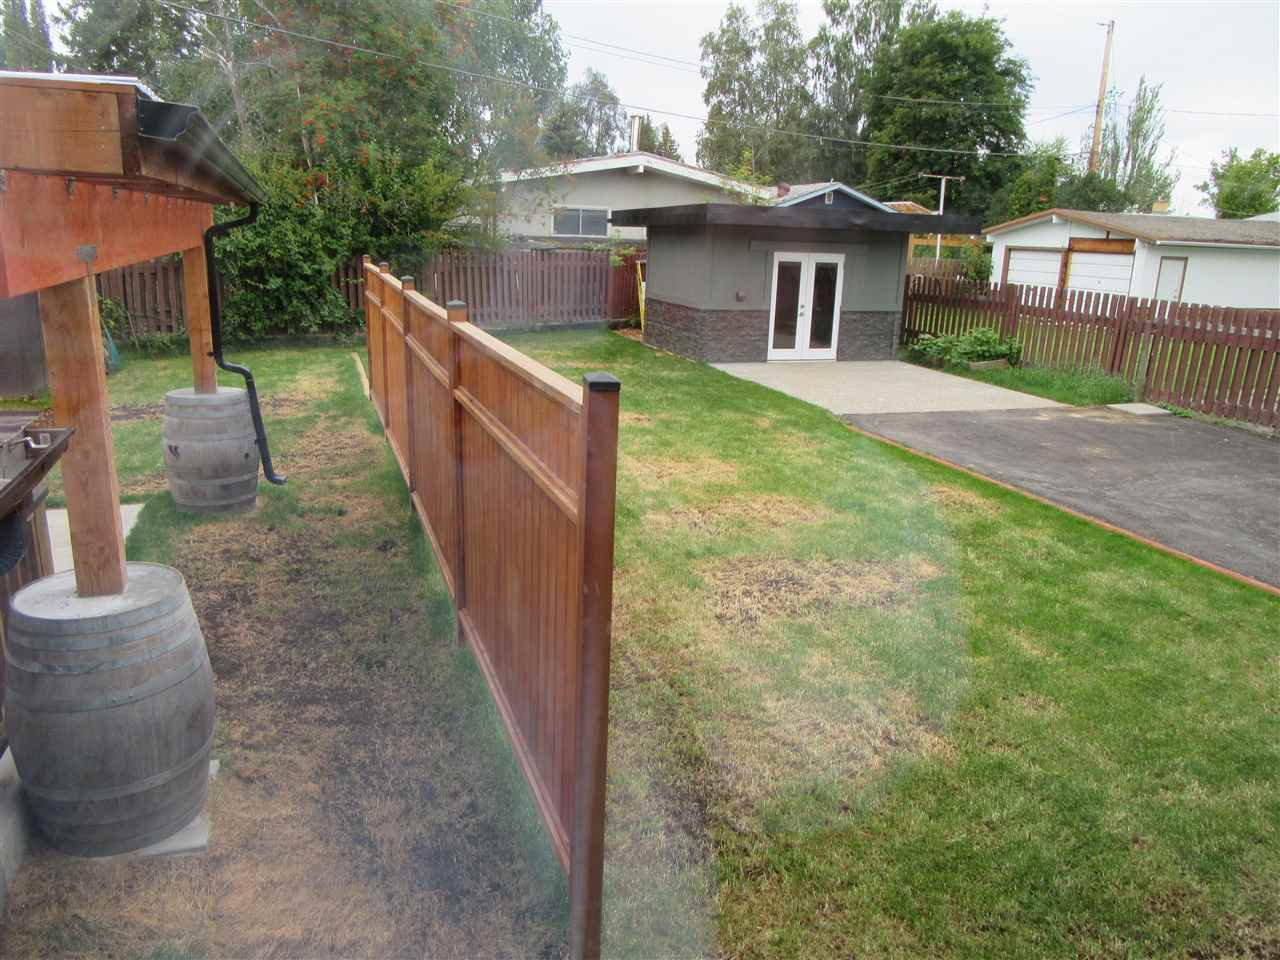 """Photo 11: Photos: 121 FREEMAN Street in Prince George: Nechako View House for sale in """"NECHAKO"""" (PG City Central (Zone 72))  : MLS®# R2493268"""